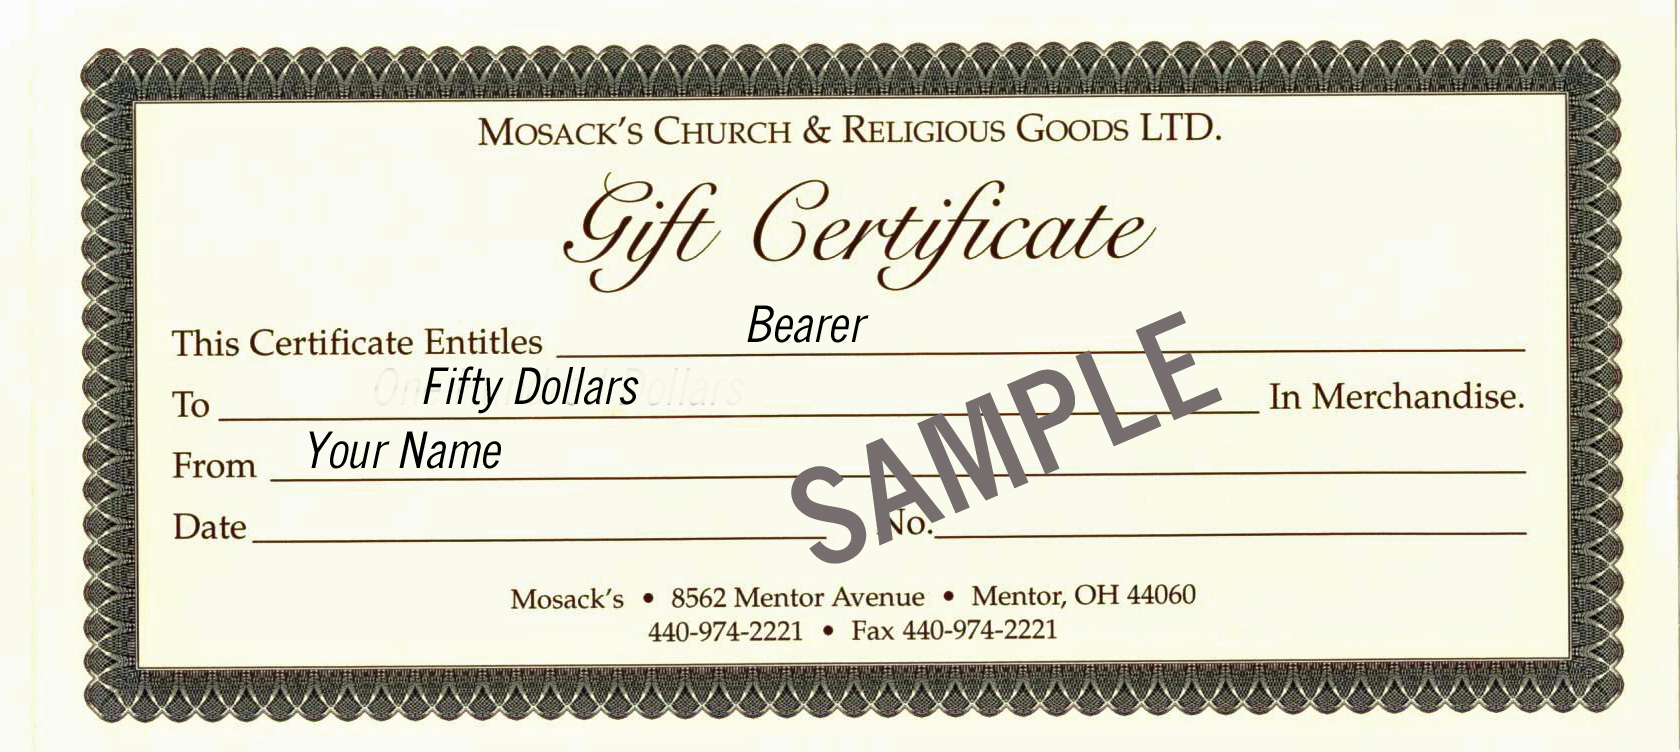 MOSACK'S $50 Gift Certificate